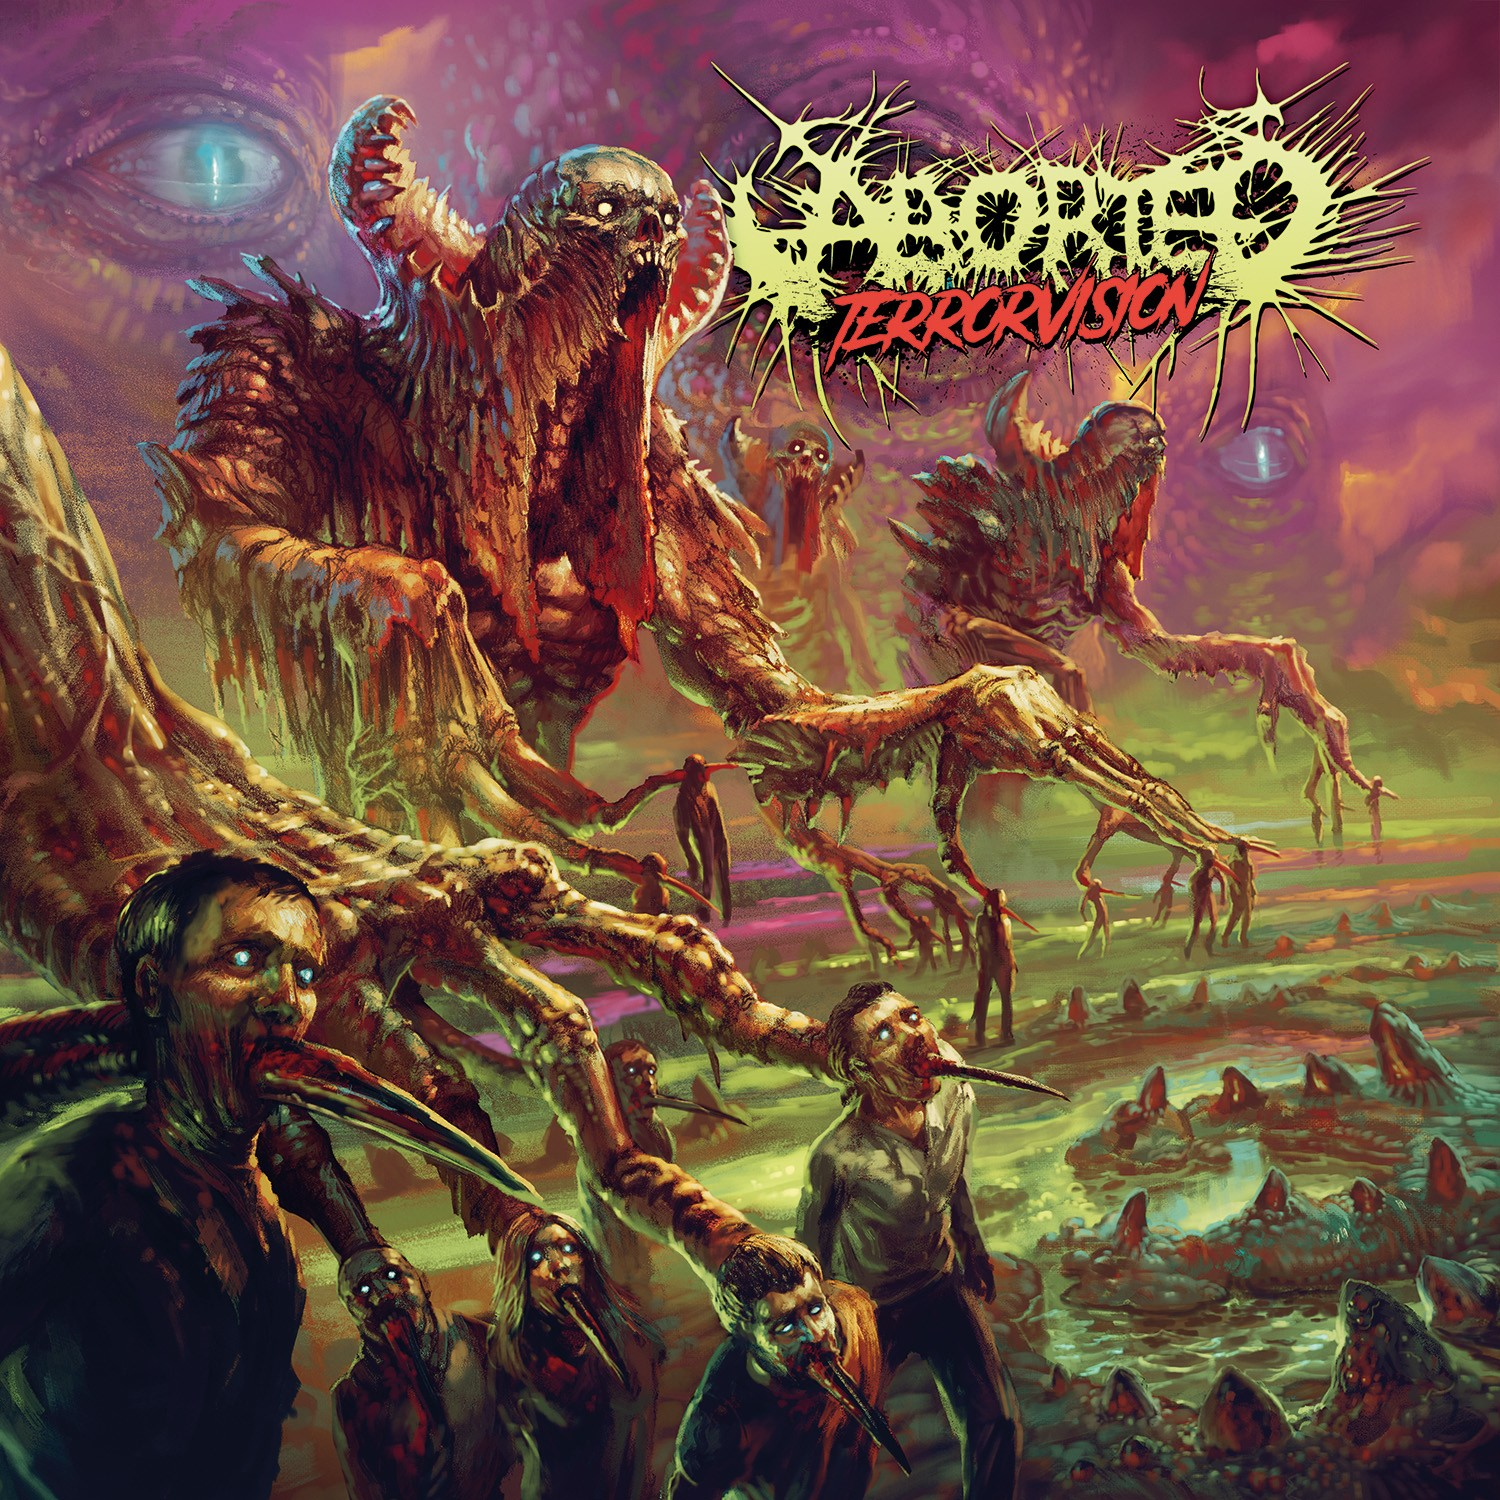 ABORTED / TERROR VISION